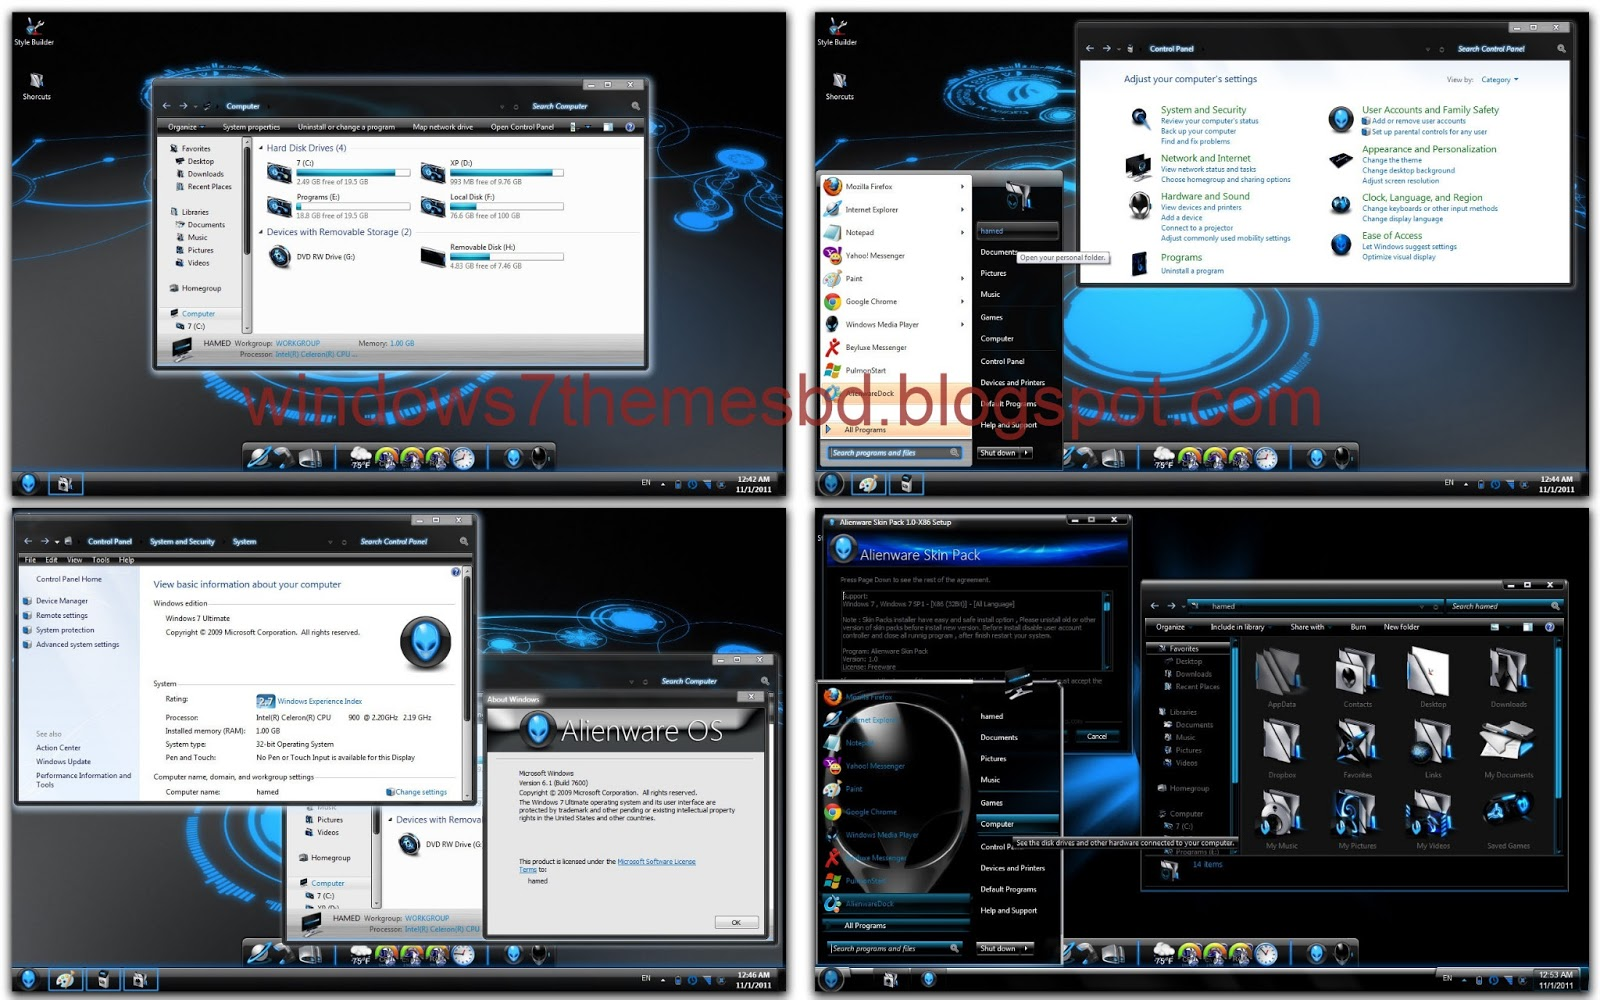 Windows 7 Alienware Blue Edition ISO Free Download